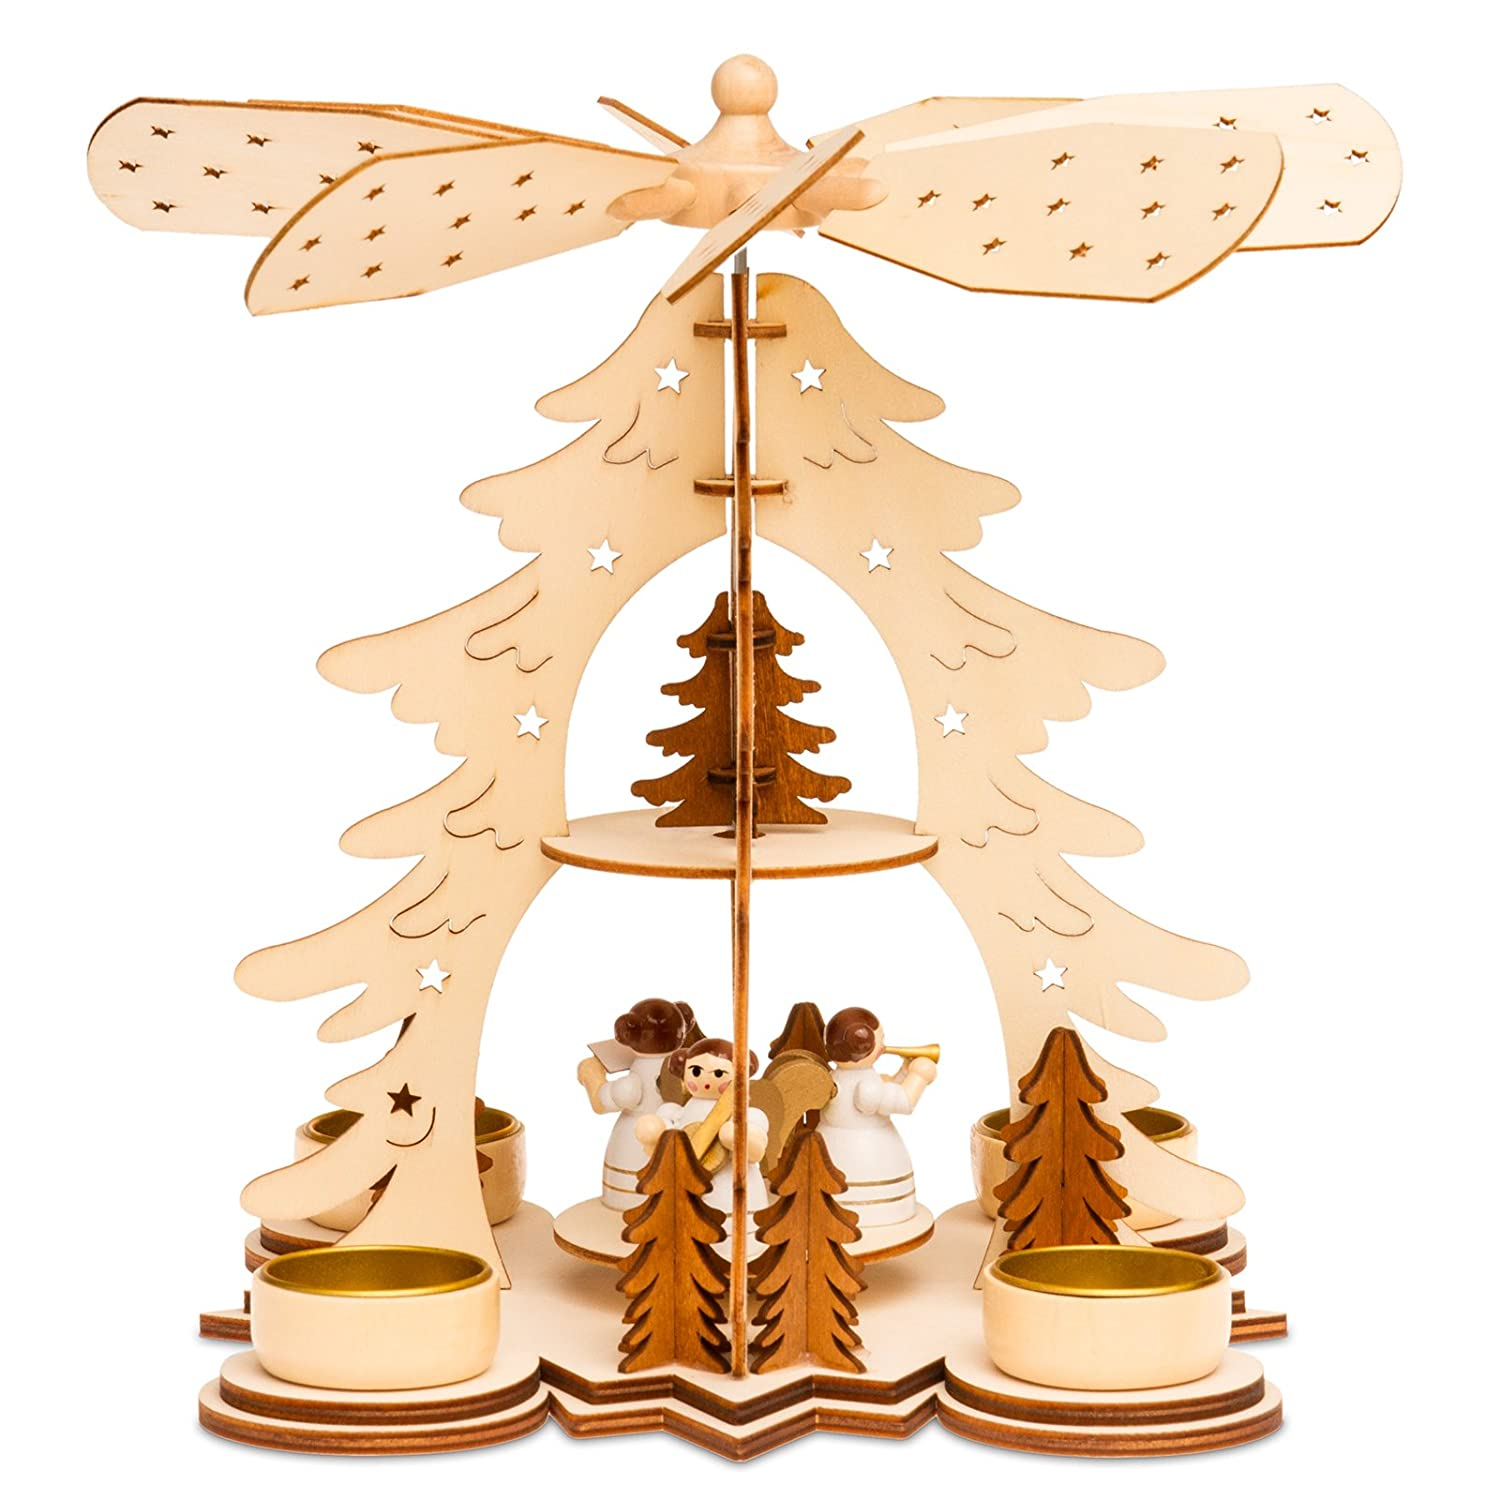 SIKORA P27 Wooden Christmas Pyramid H:26 cm / 10 inches SIKORA Weihnachtswelt